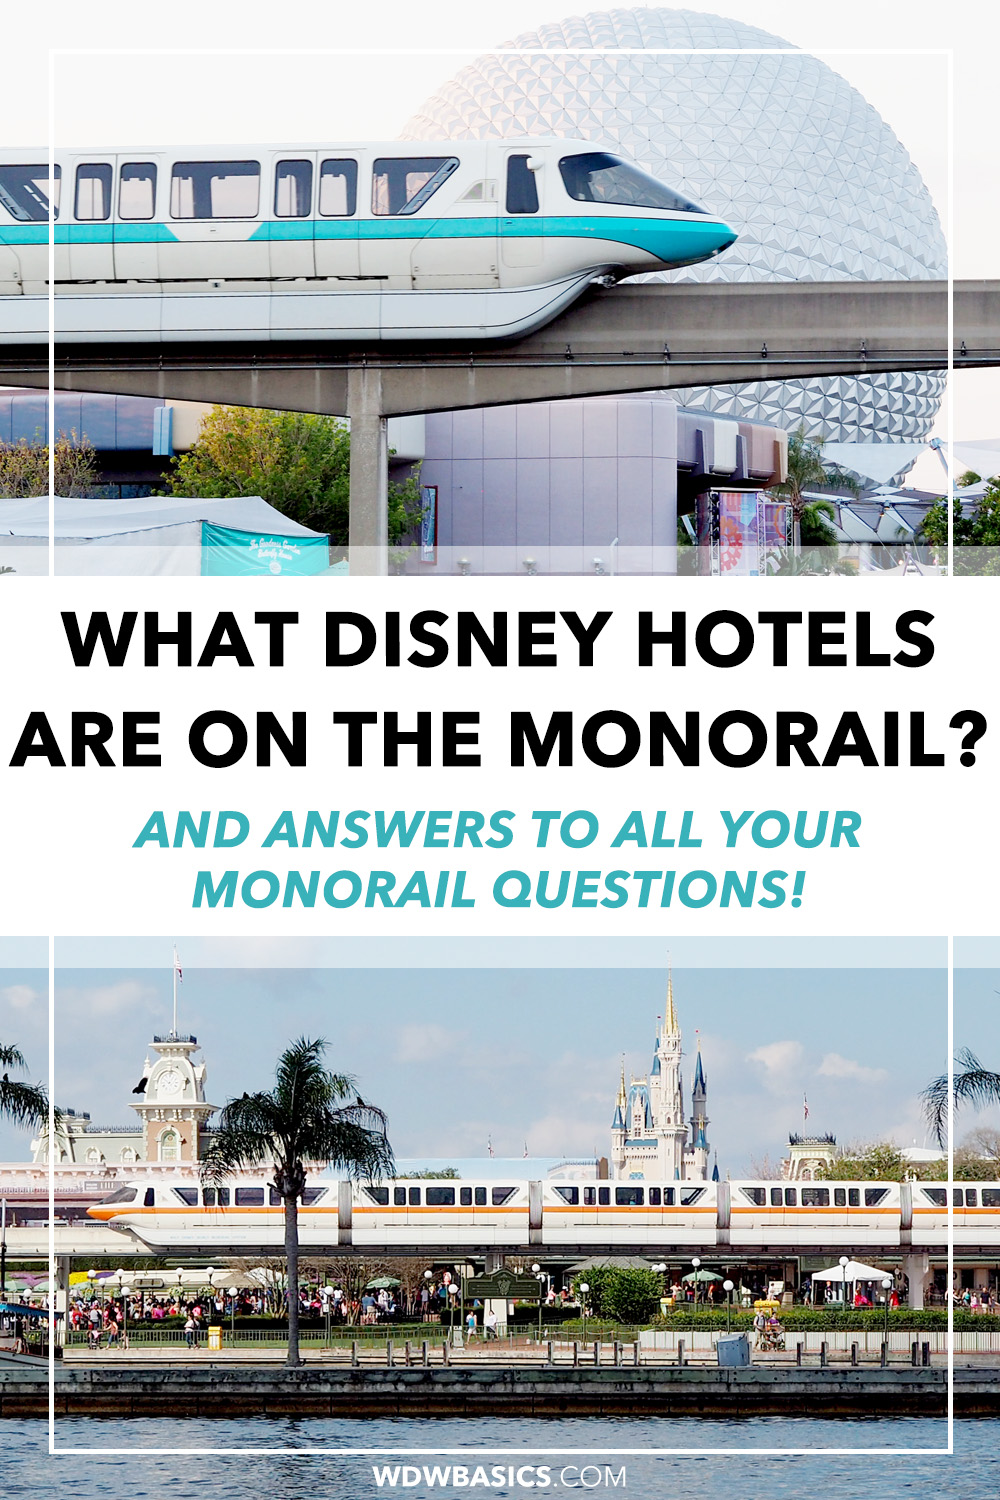 What Disney World resorts are on the monorail?